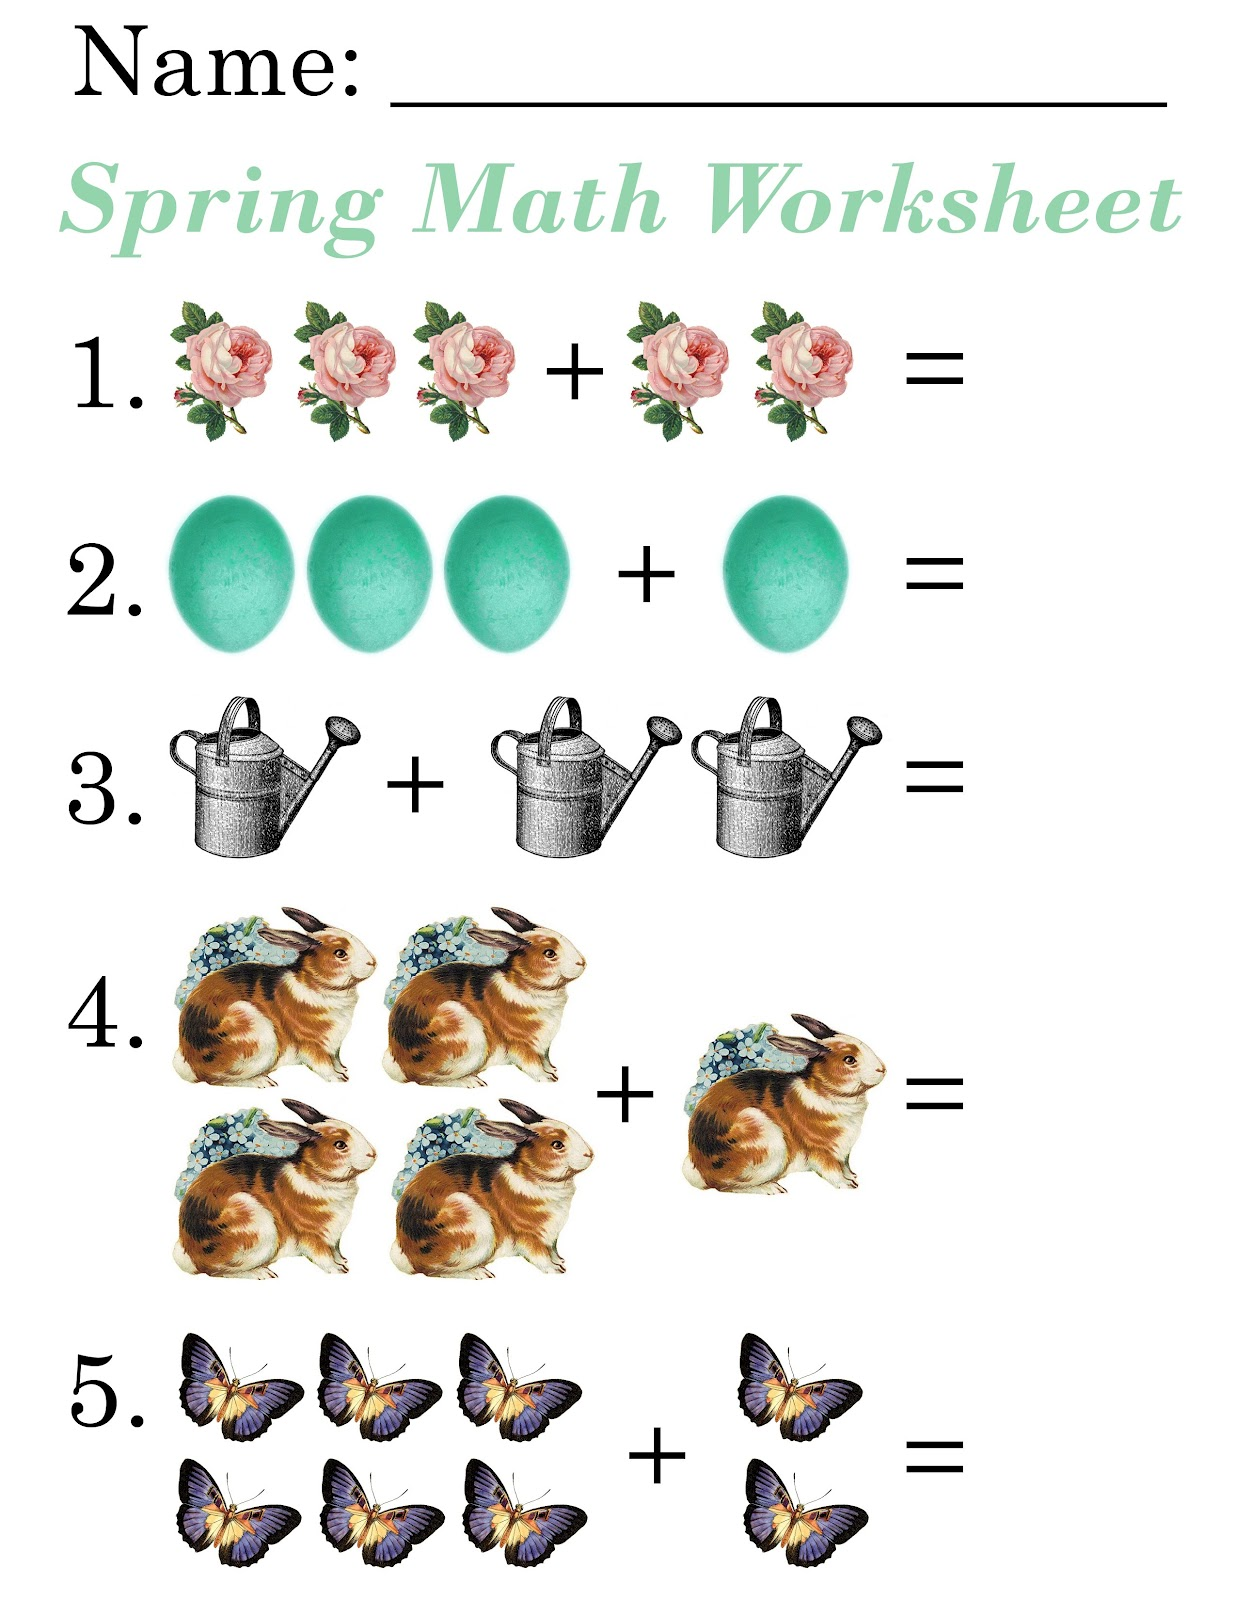 Worksheets How To Make A Math Worksheet worksheet 612792 create maths worksheets math 55 how to make a versaldobip worksheets